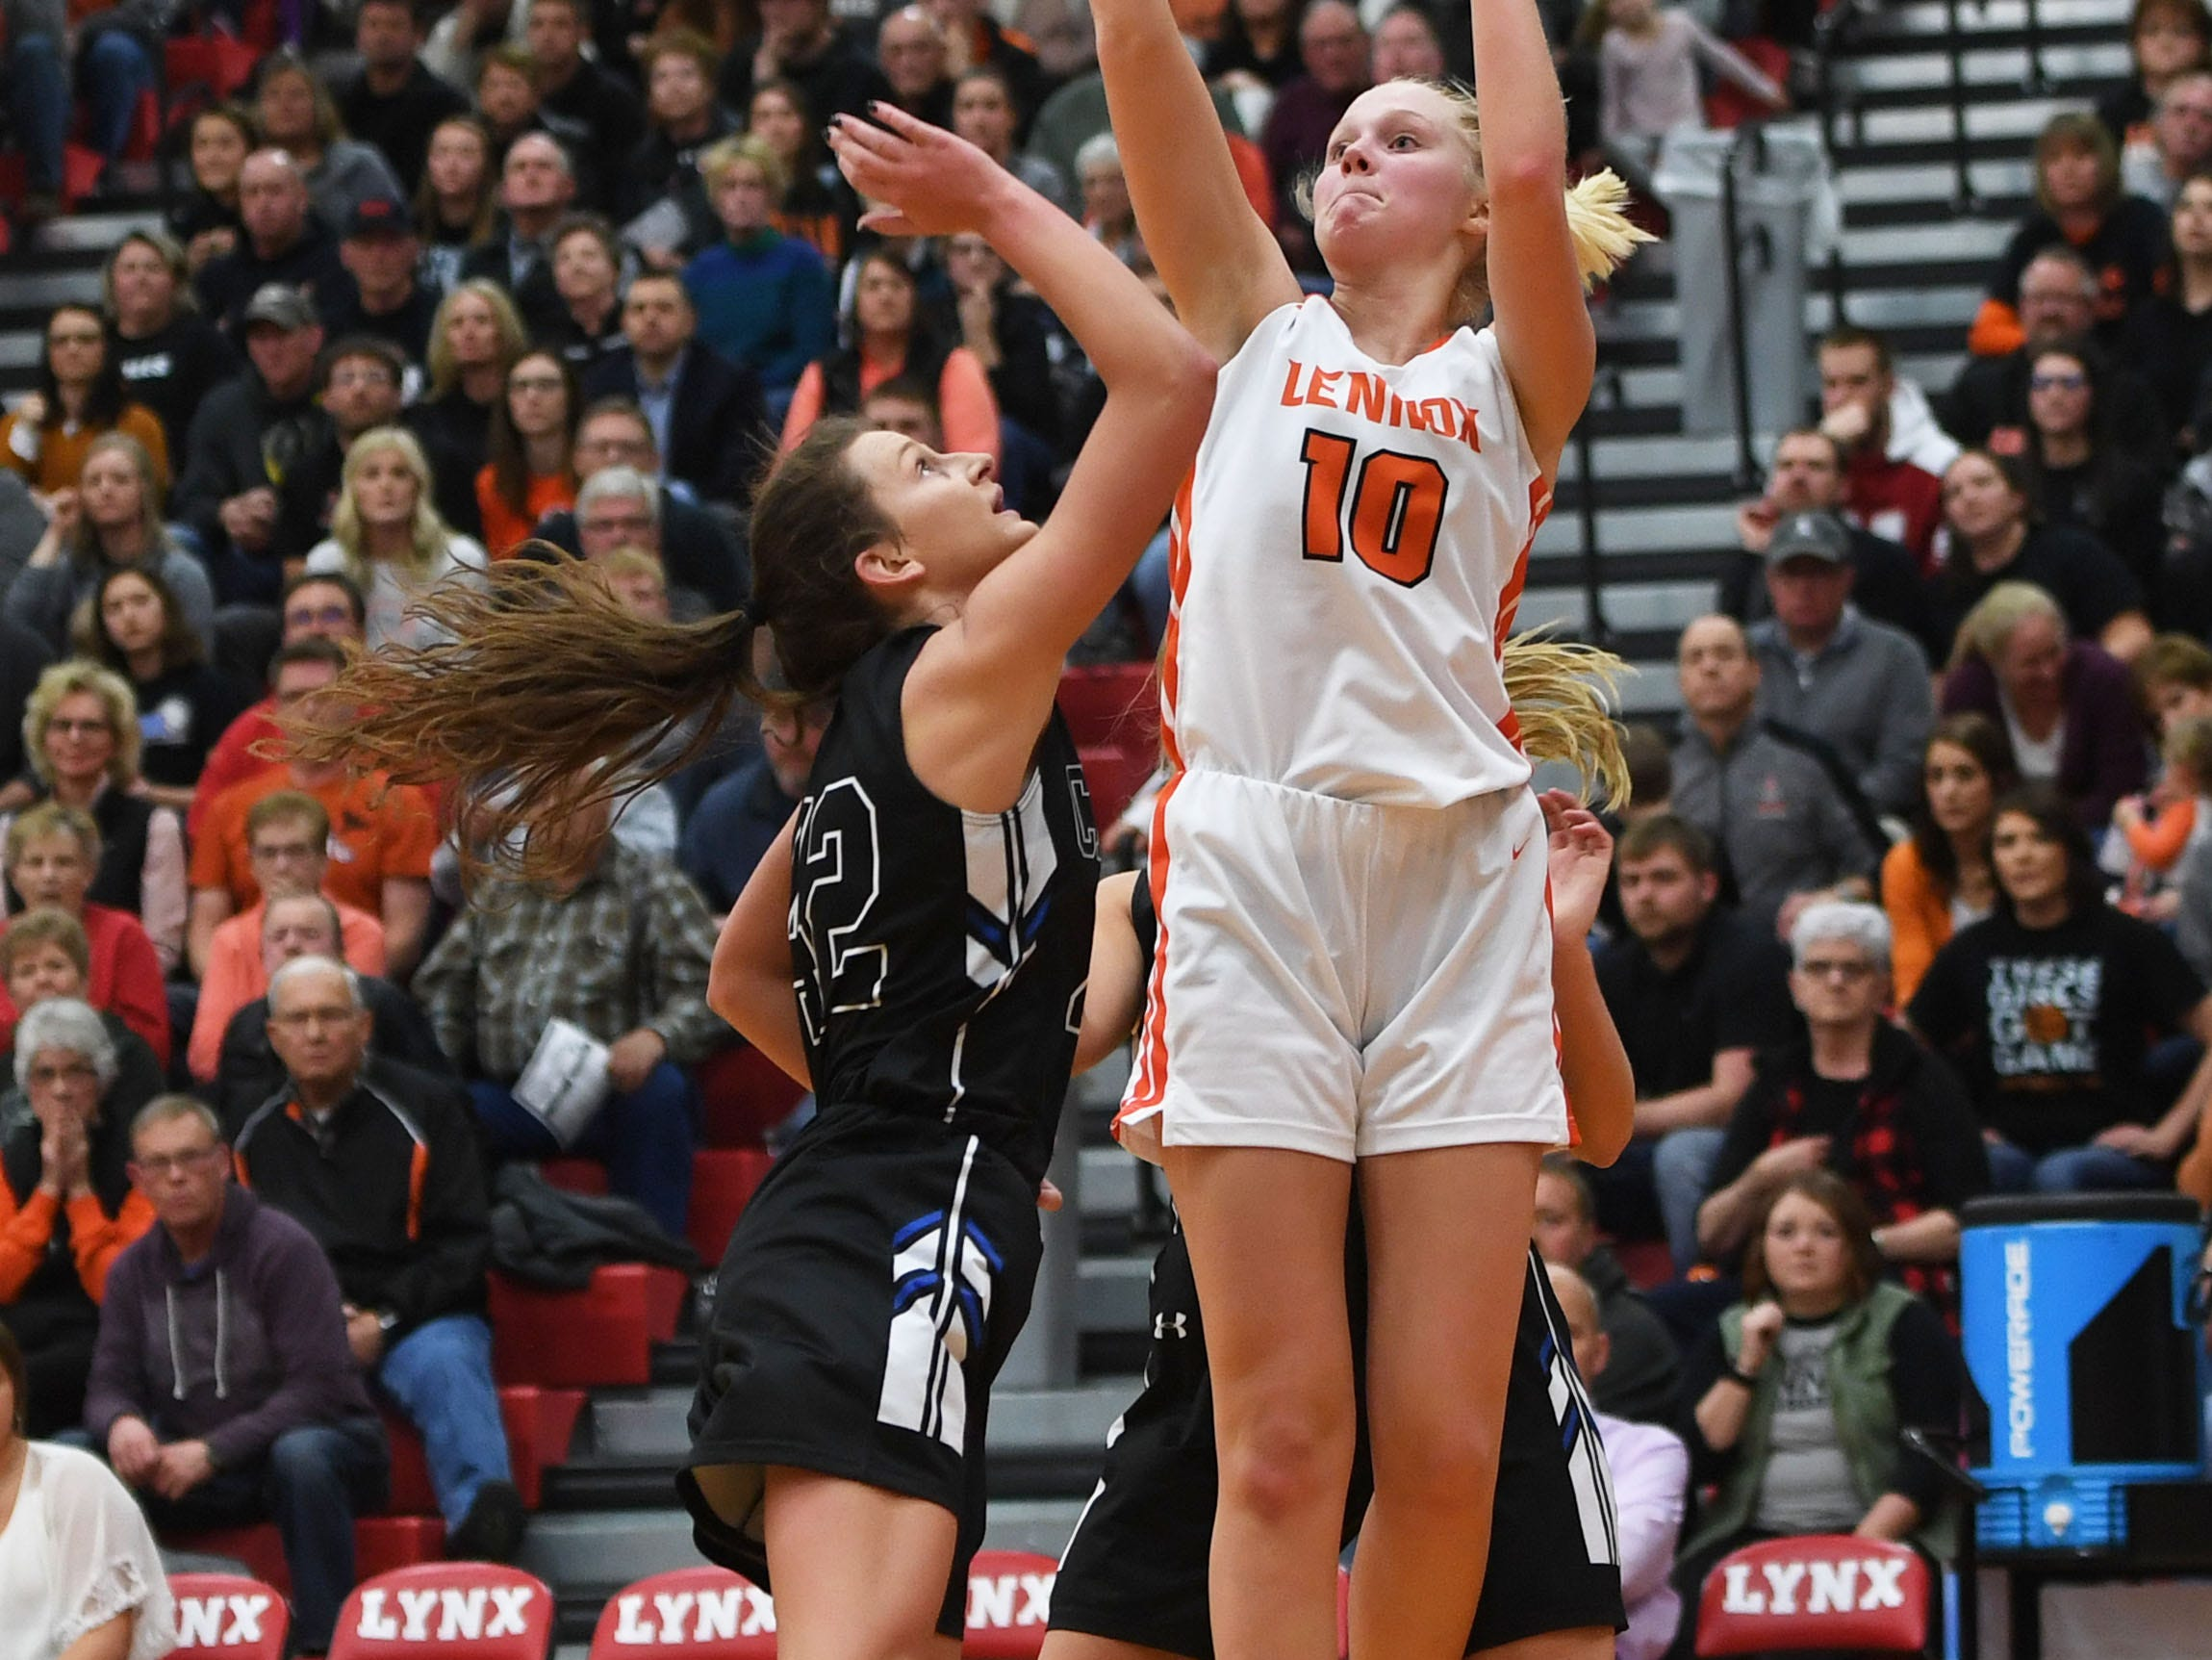 Lennox's Madysen Vlastuin takes a shot against Sioux Falls Christian during the game Thursday, March 7, at Brandon Valley High School in Brandon Valley.